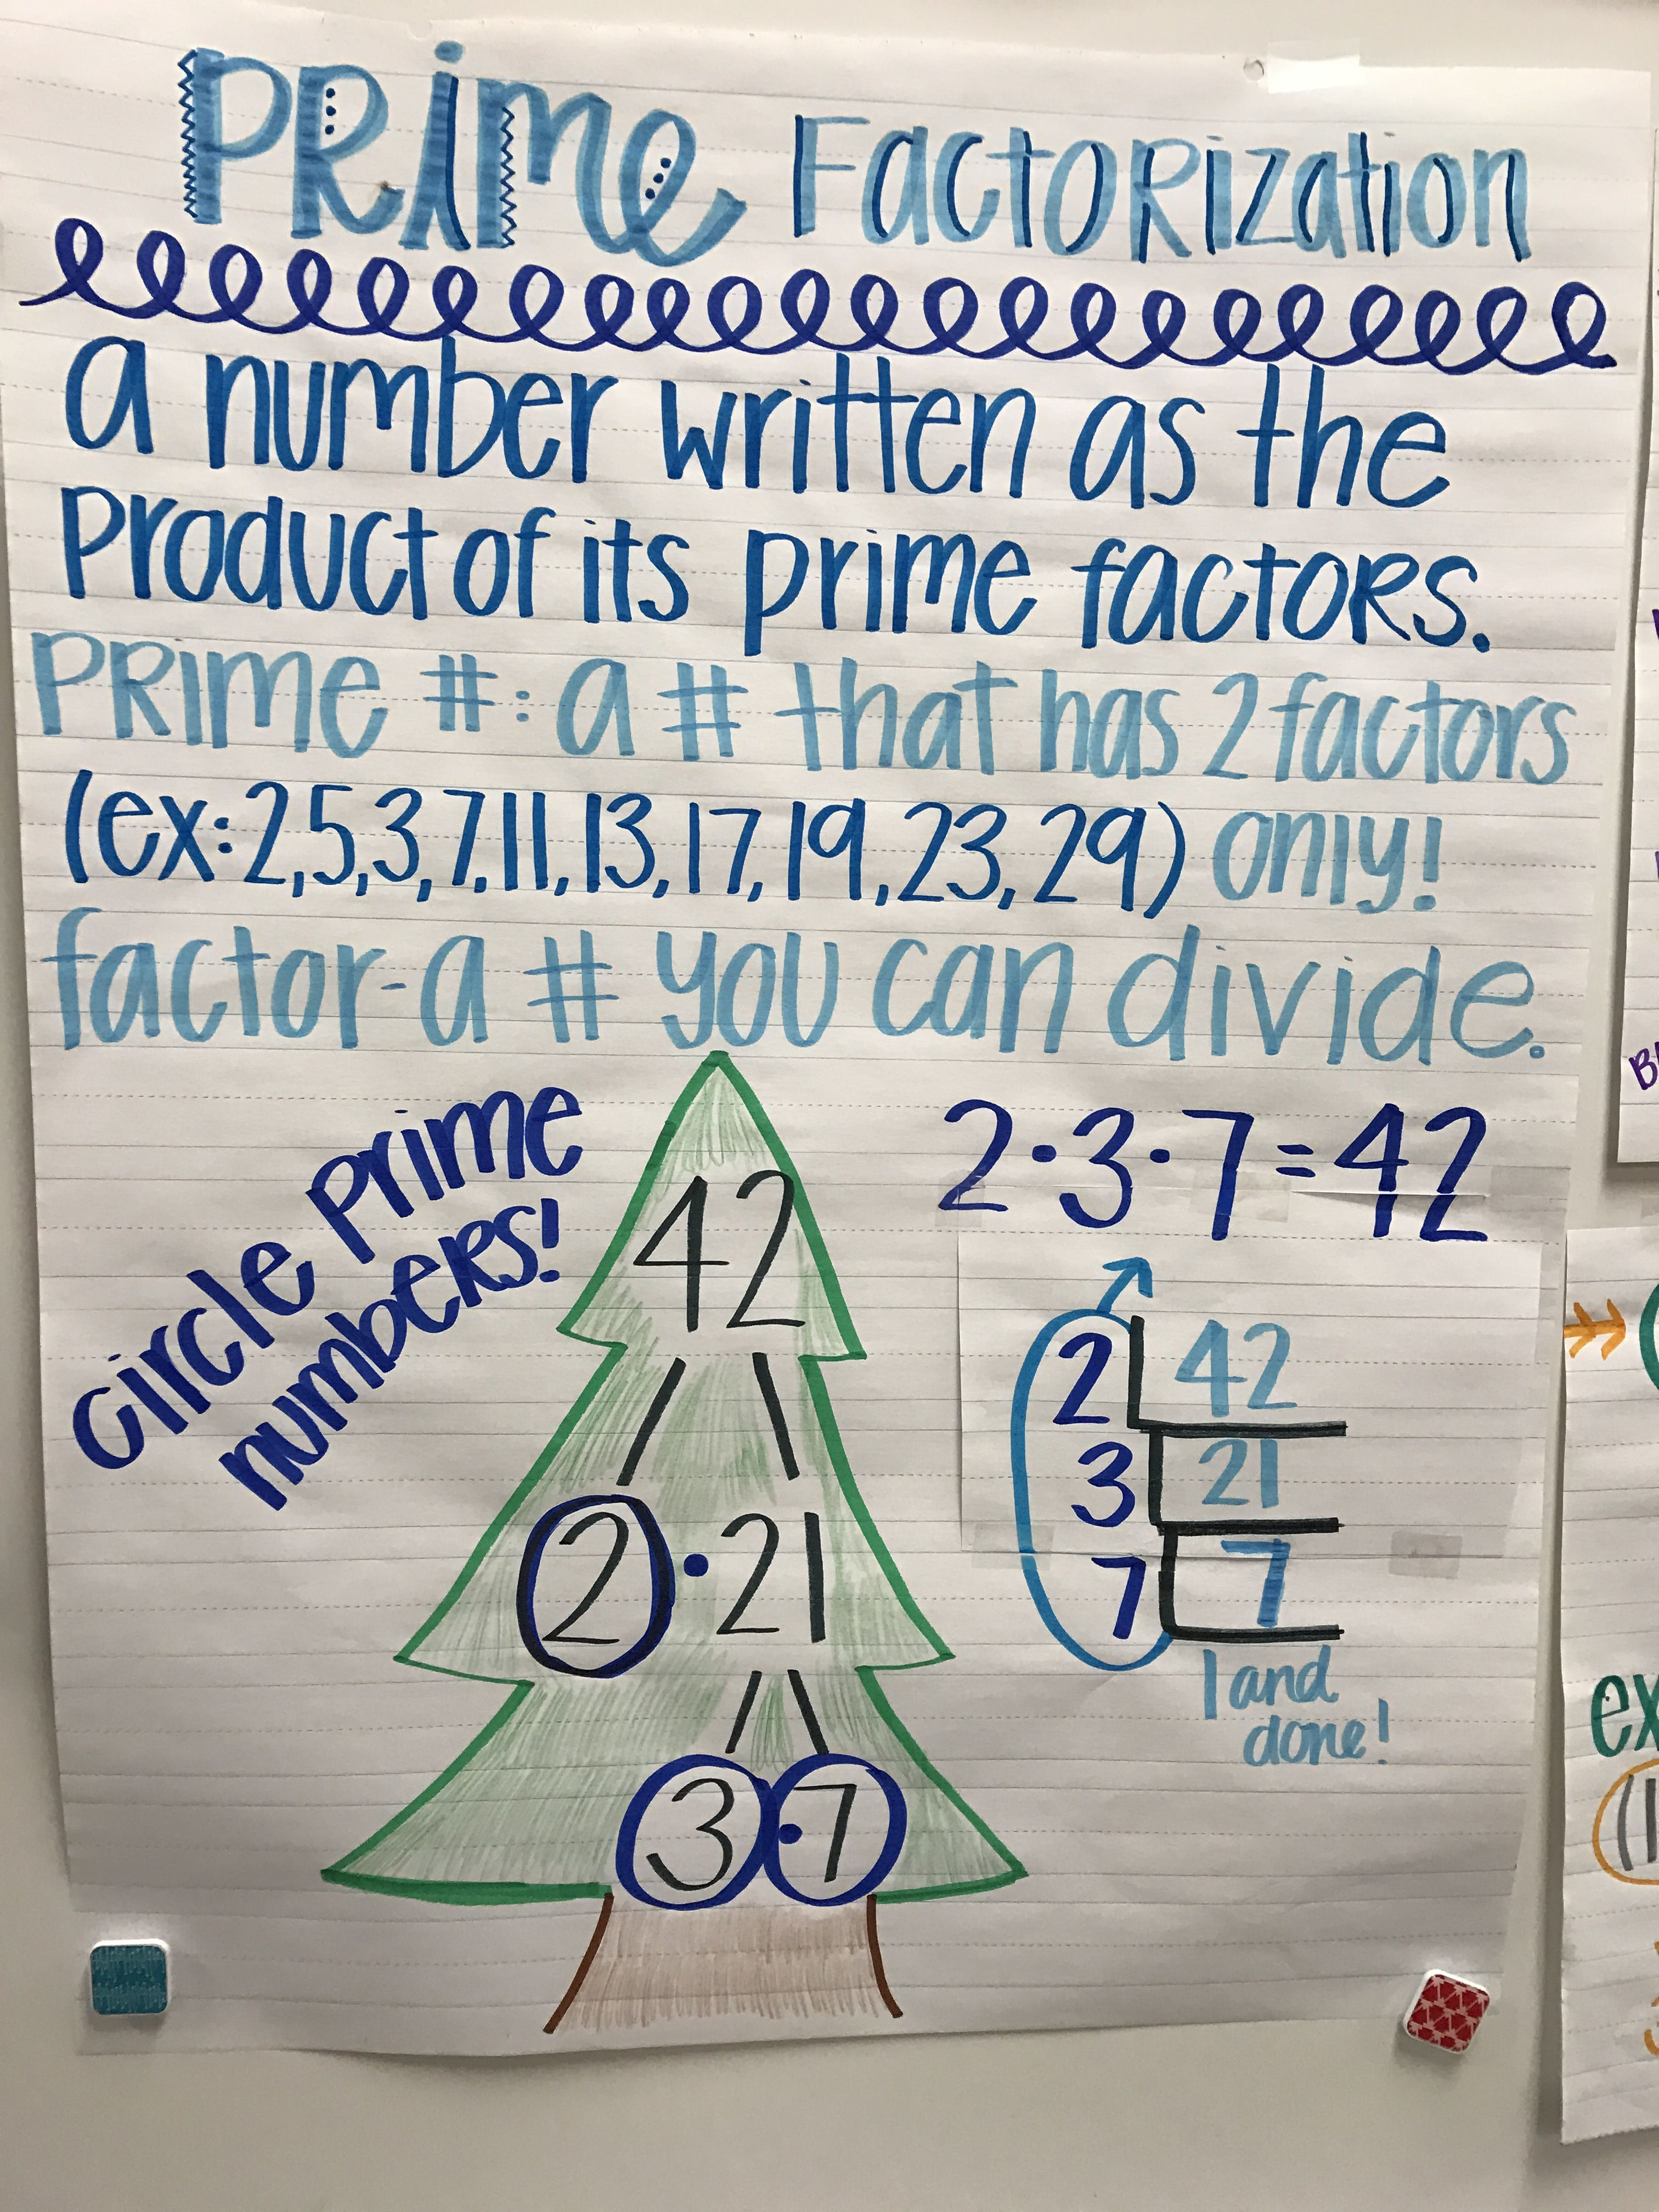 Prime Factorization 6th Grade Math 6th Grade Math Anchor Charts Prime Composite Factors Math Anchor Charts Middle School Anchor Charts Teaching Mathematics